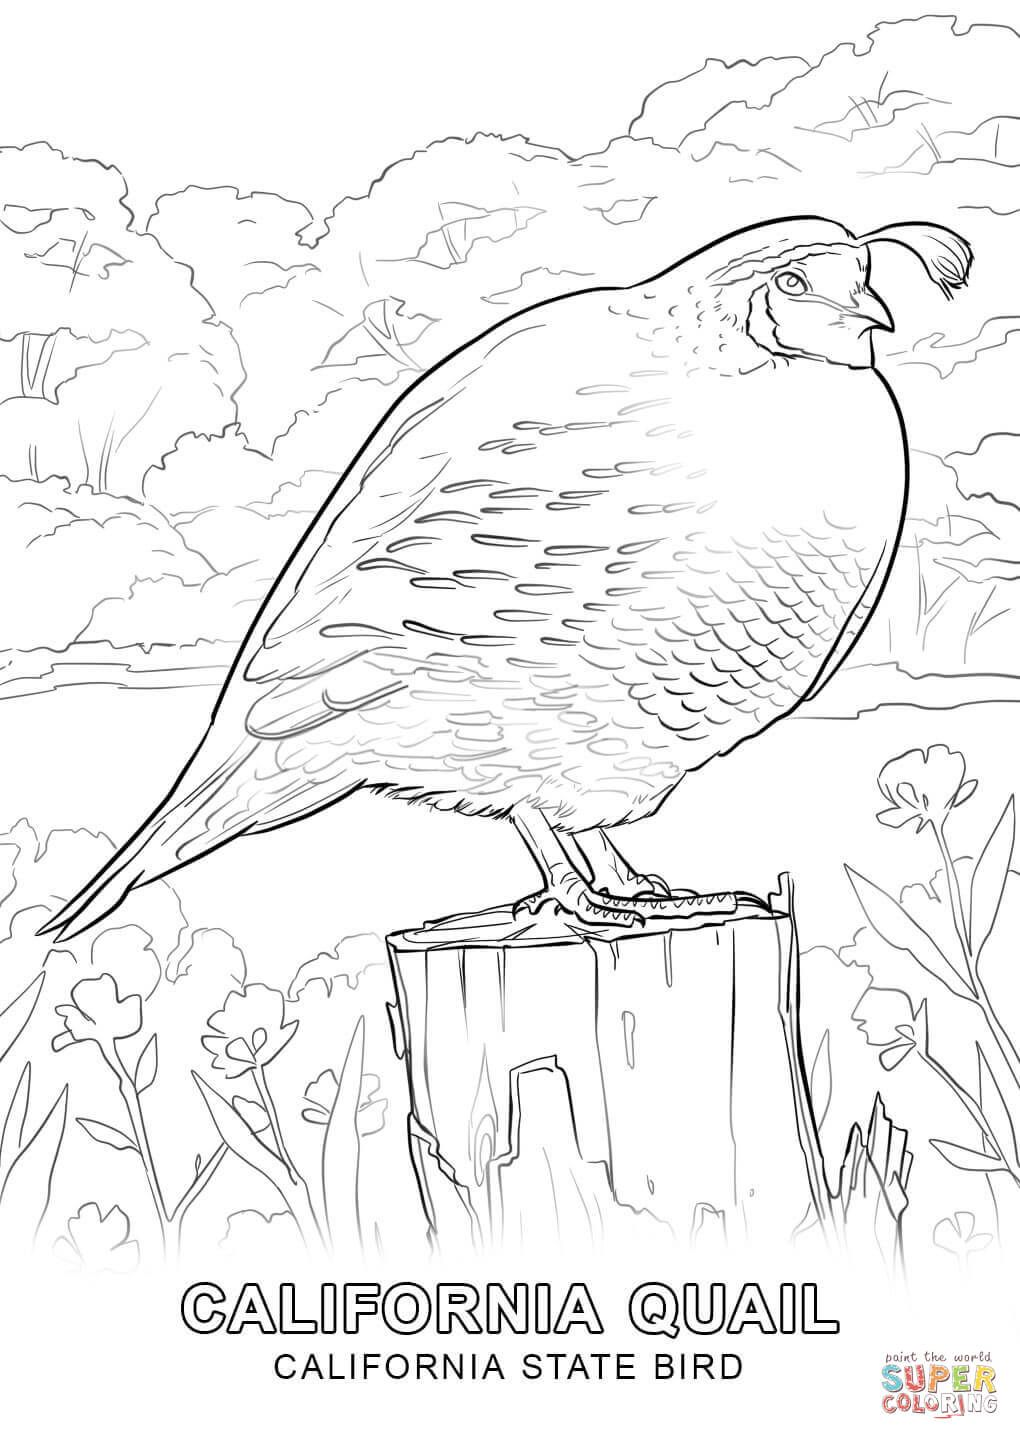 California State Bird Coloring Page From California Category Select From 27007 Printable Crafts Of Bird Coloring Pages Coloring Pages Detailed Coloring Pages